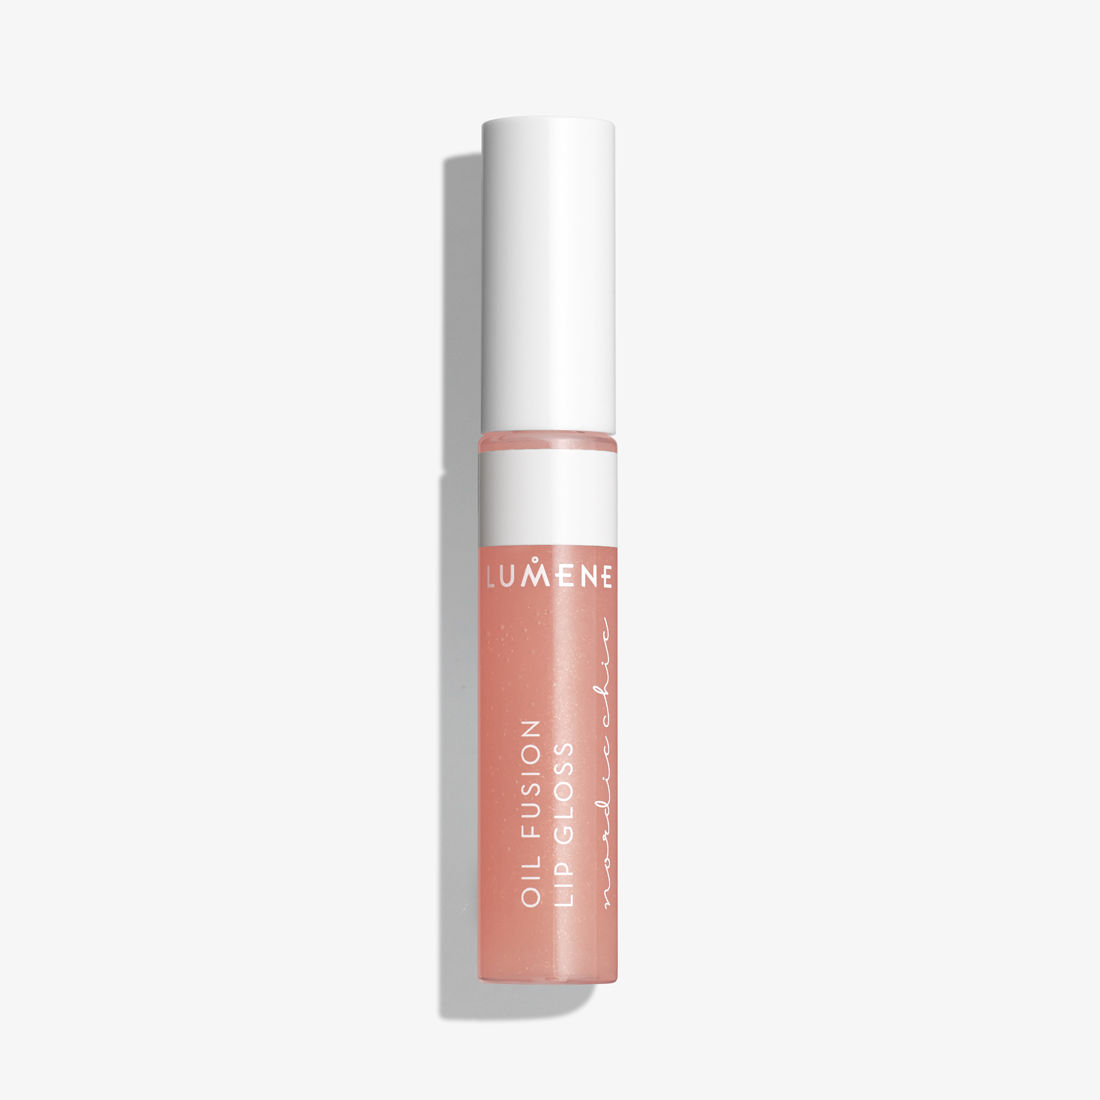 Lumene Nordic Chic Oil Fusion Lip Gloss